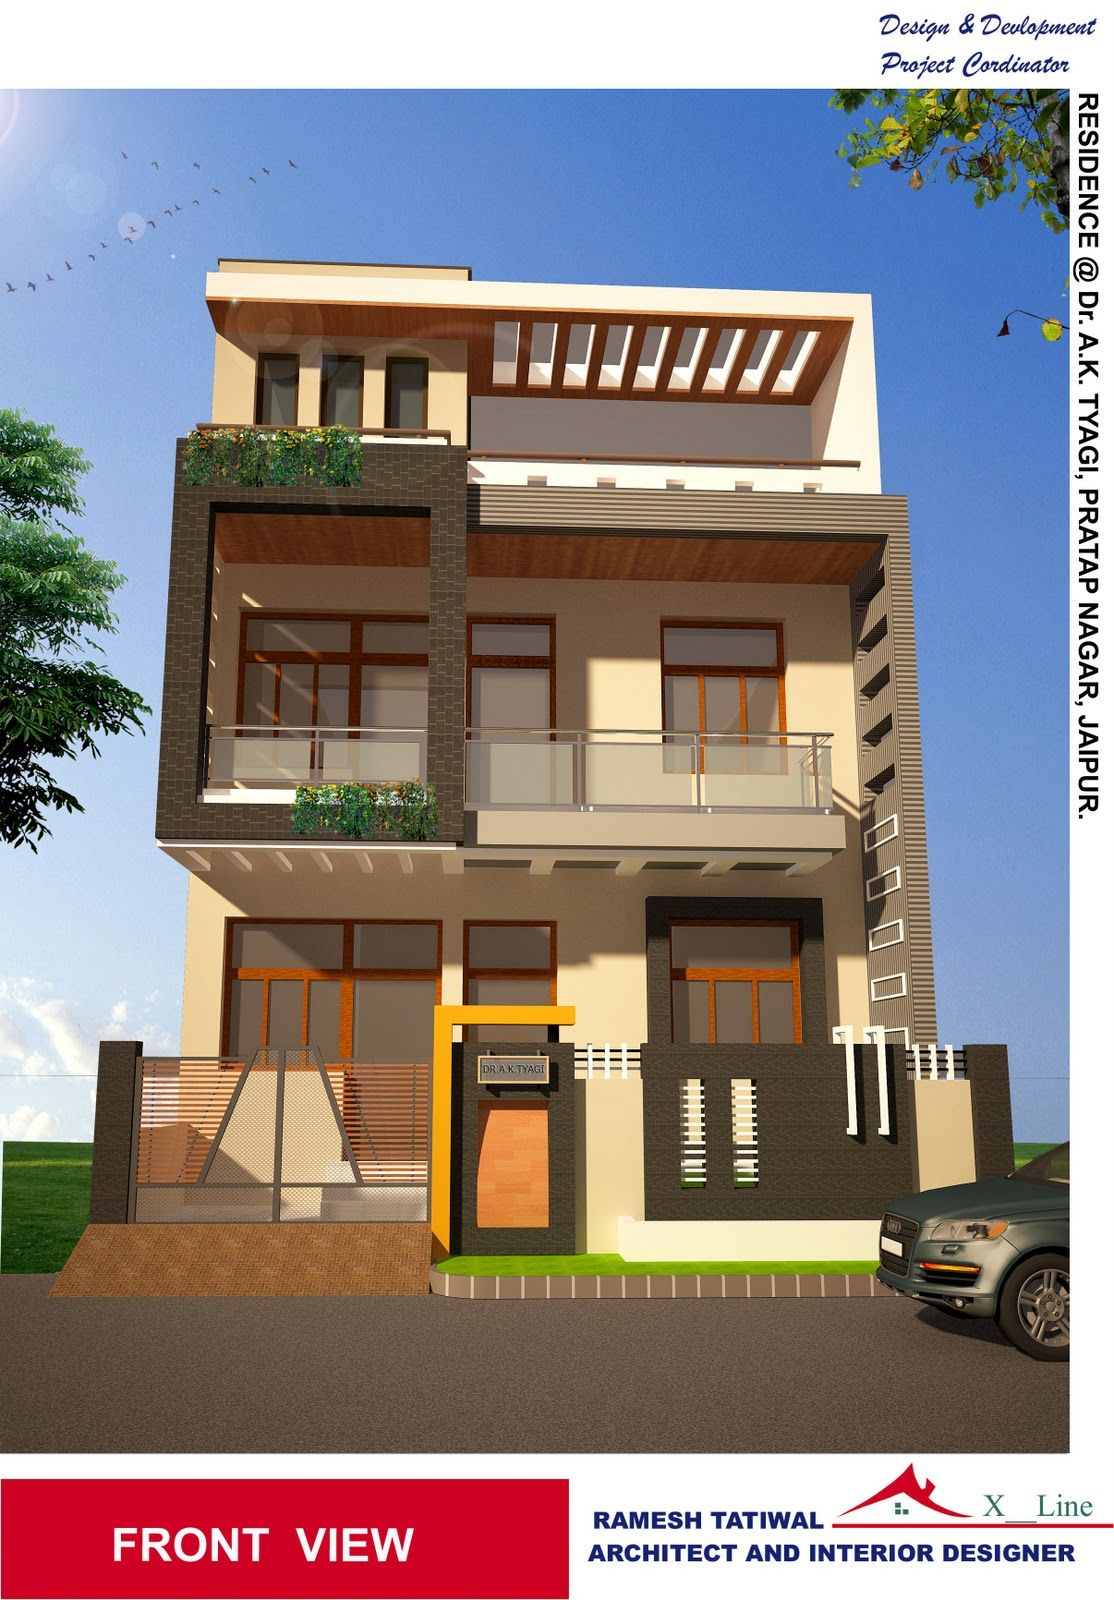 Housedesigns modern indian home architecture design from for Looking for an architect to design a house